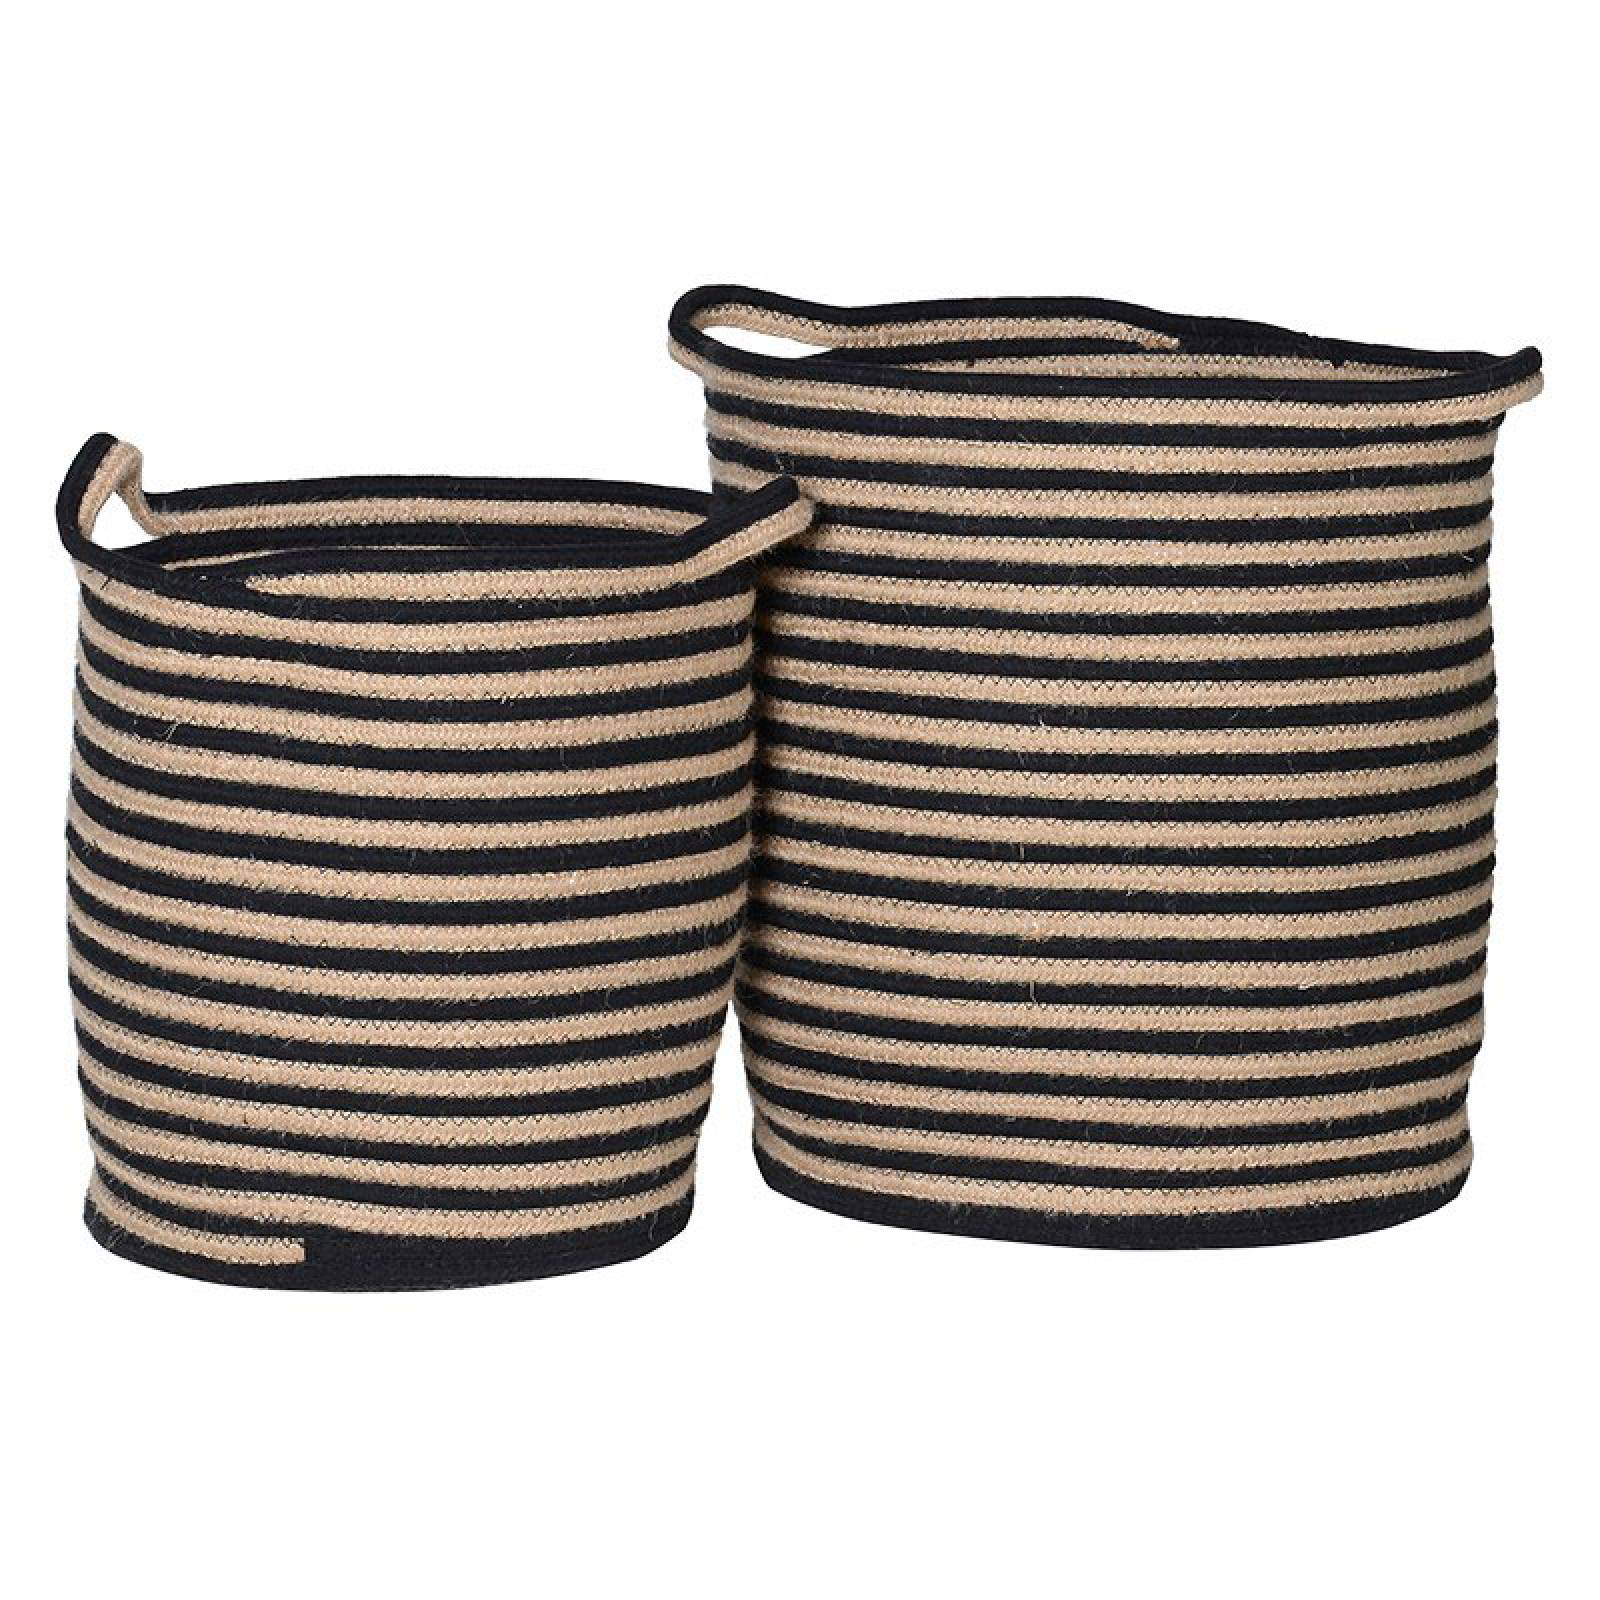 A Set Of Two Cotton Woven Striped Black Baskets With Handles